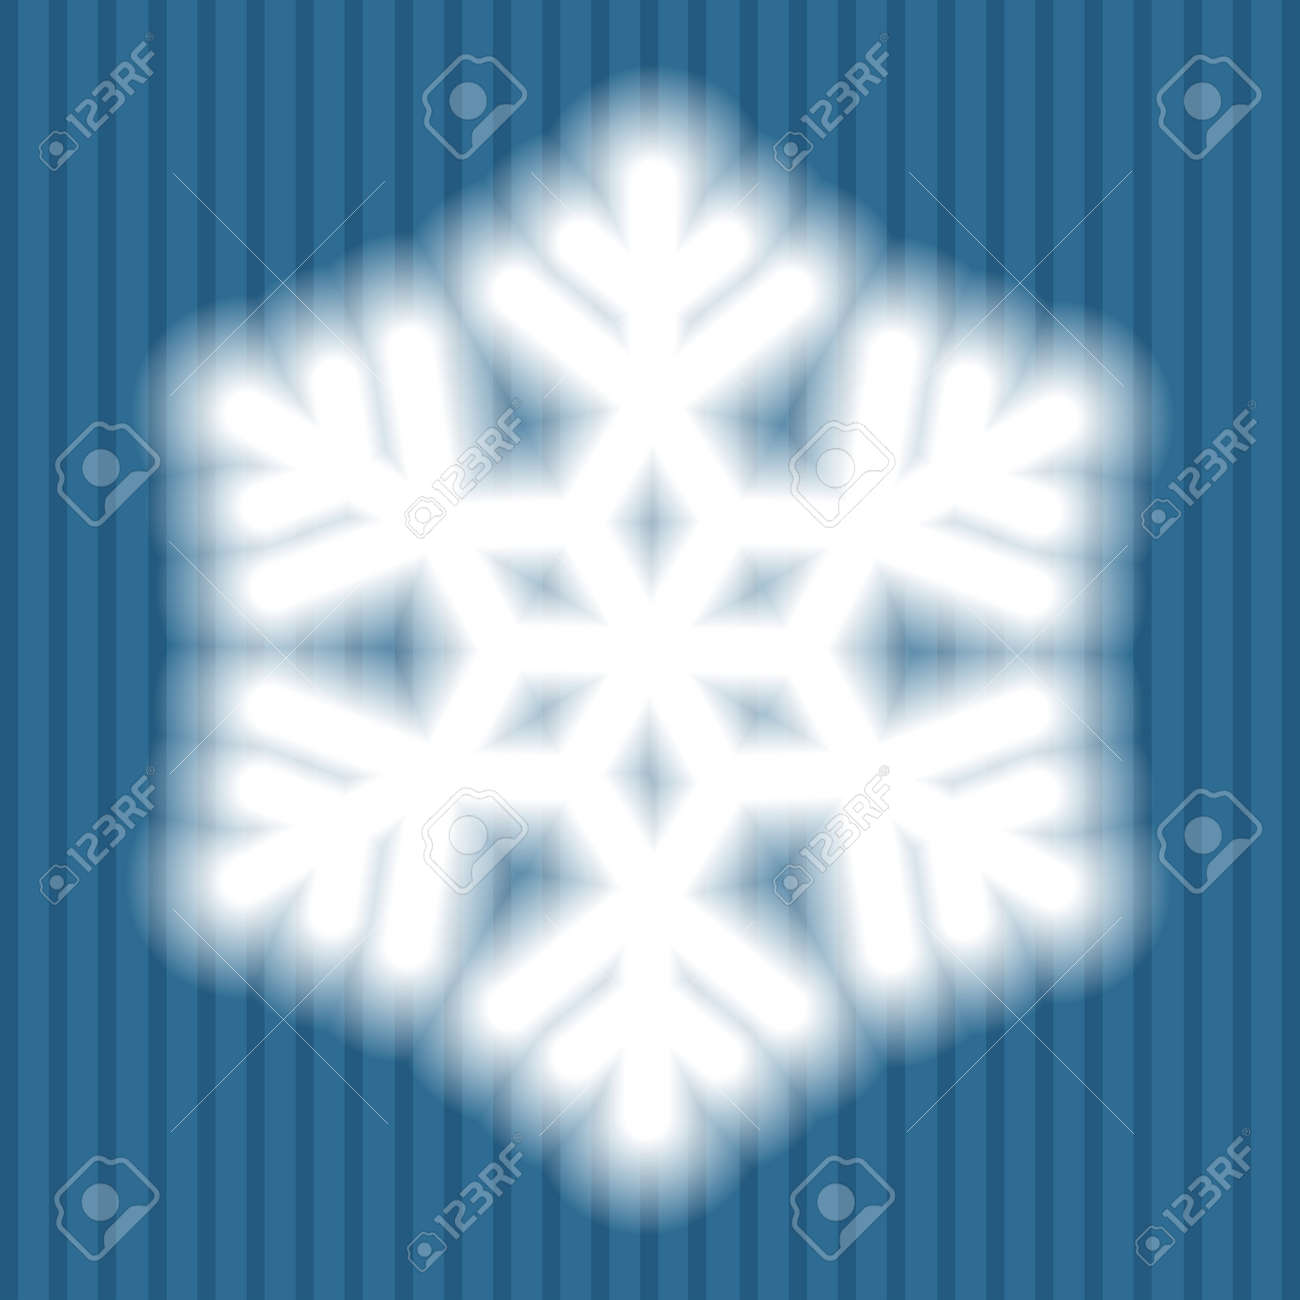 a18af64bfd Big white snowflake with soft translucent edges on blue striped background.  Transparency only in vector